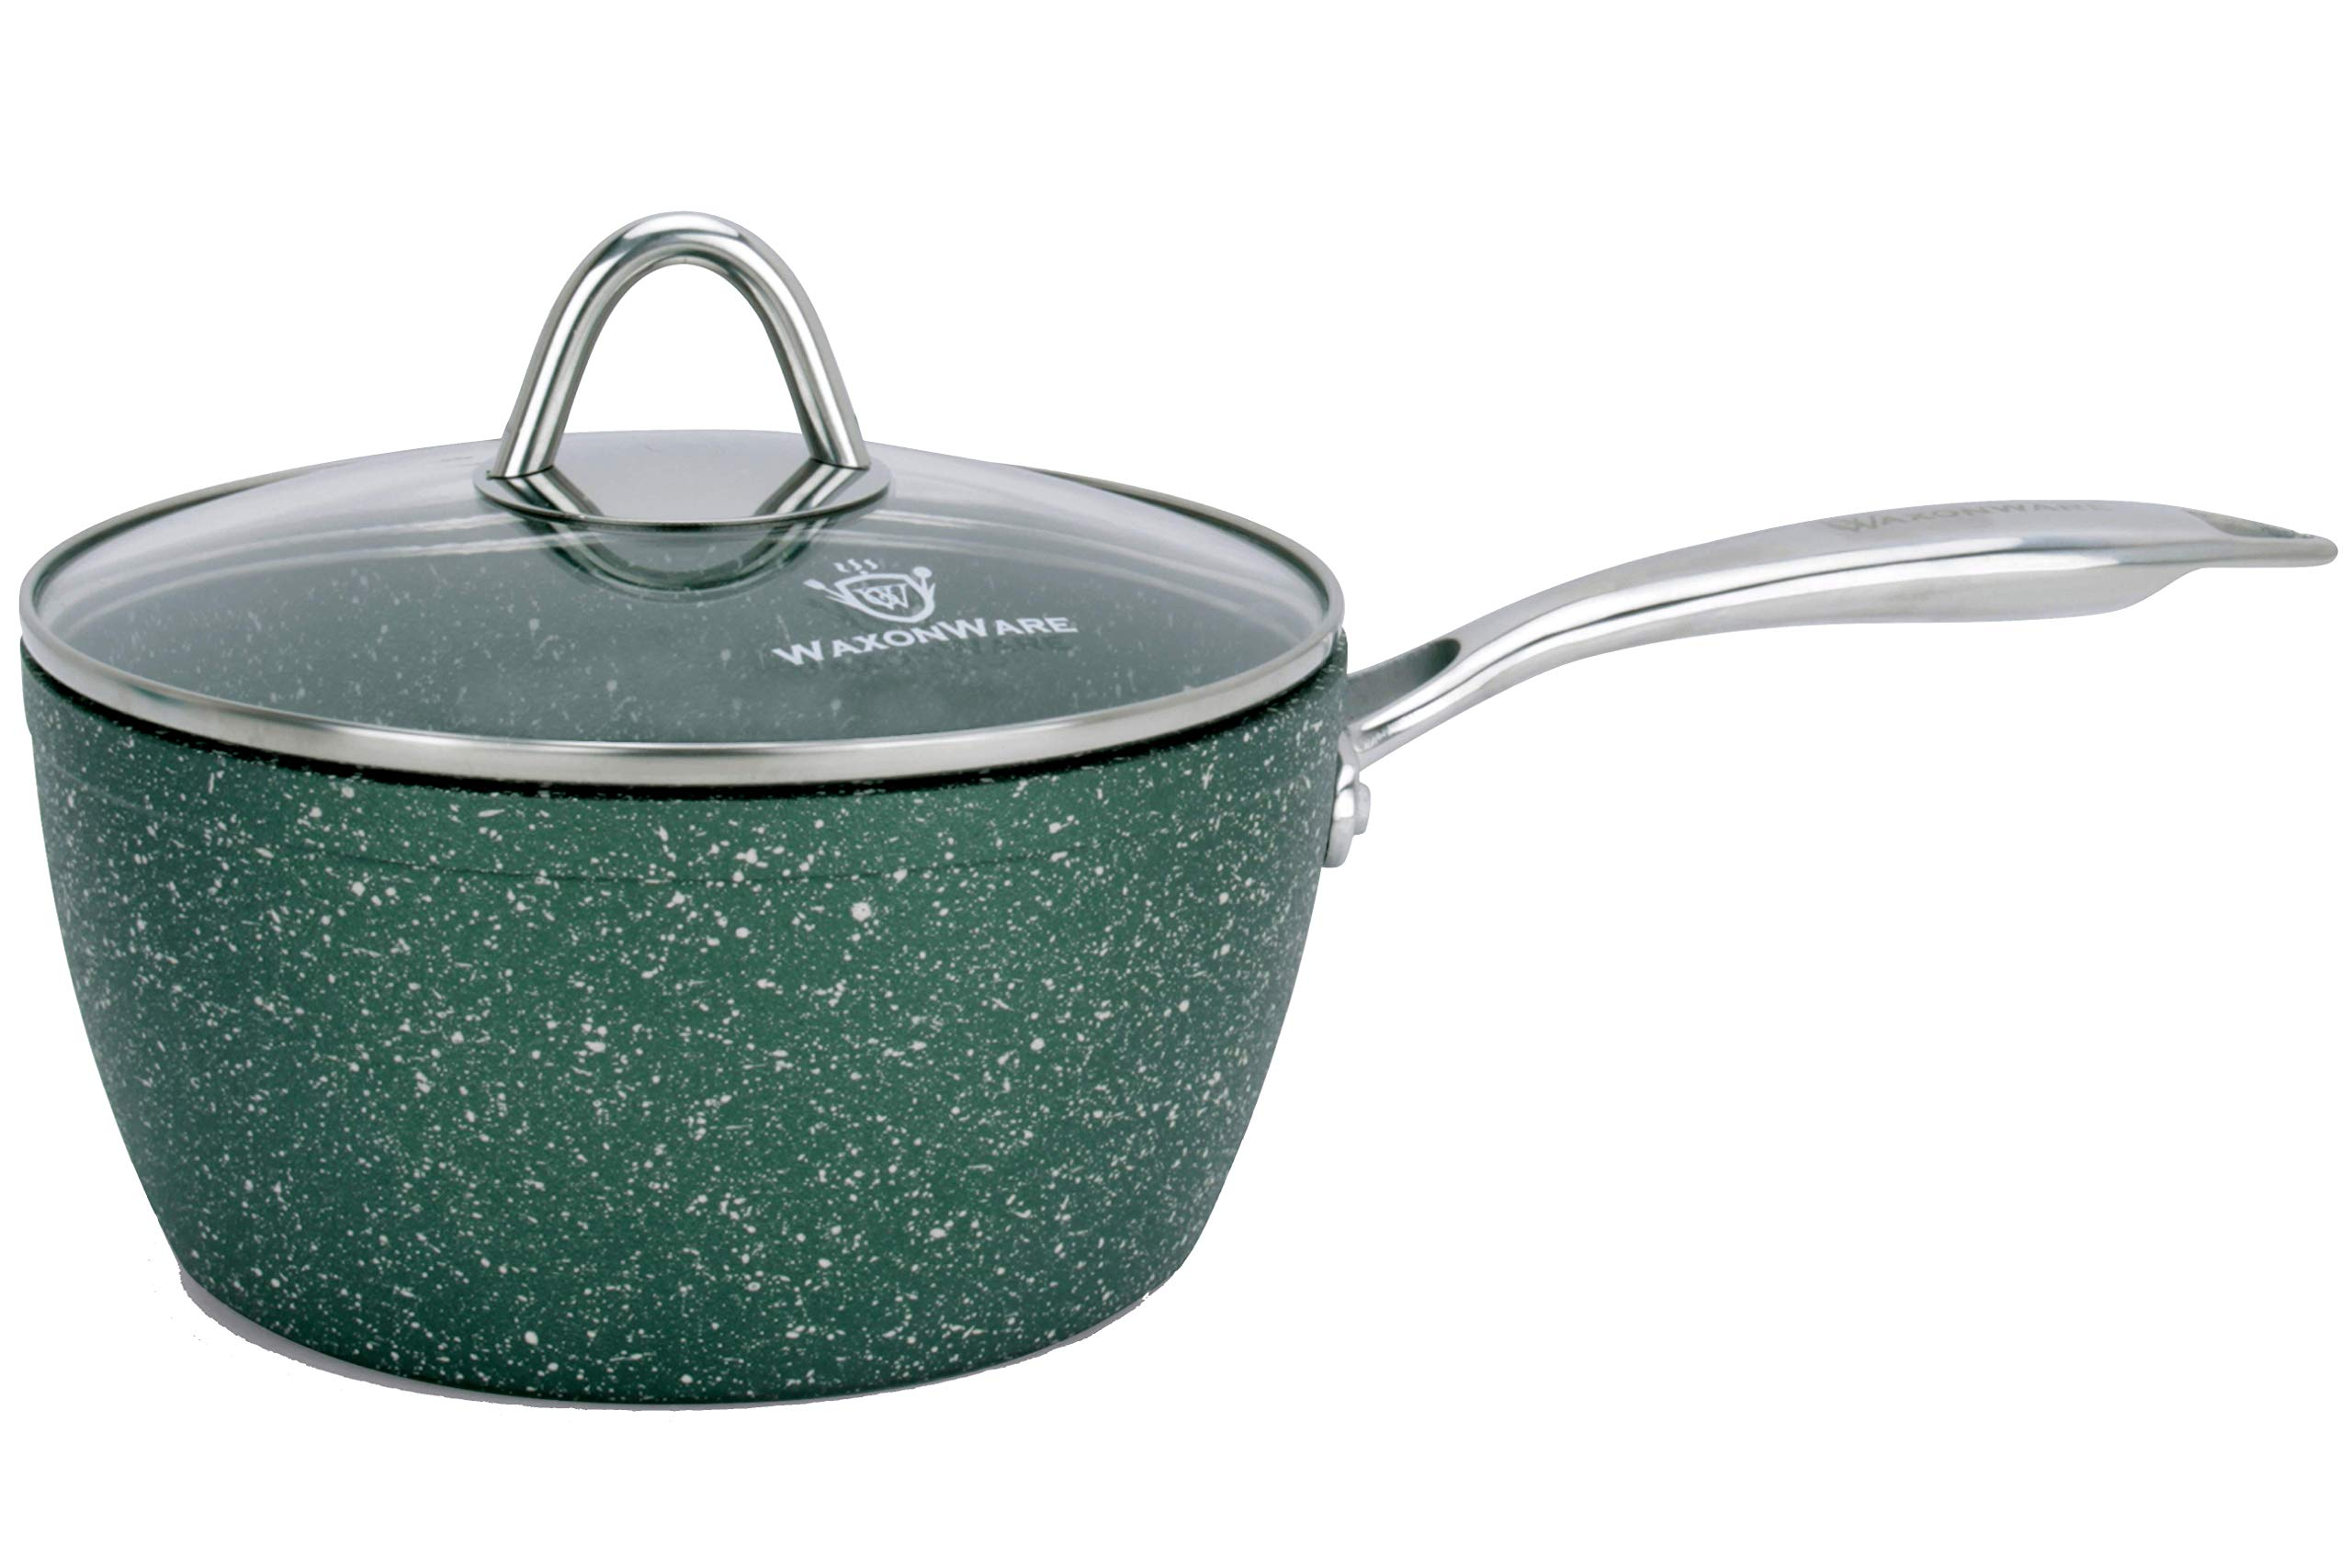 WaxonWare 2.5 Quart Stone Nonstick Saucepan With Glass Lid, Scratch Resistant Non Toxic APEO PFOA Free Nonstick Cookware Cooking Pot, Induction Compatible, Dishwasher & Oven Safe (EMERALD Series) by WaxonWare